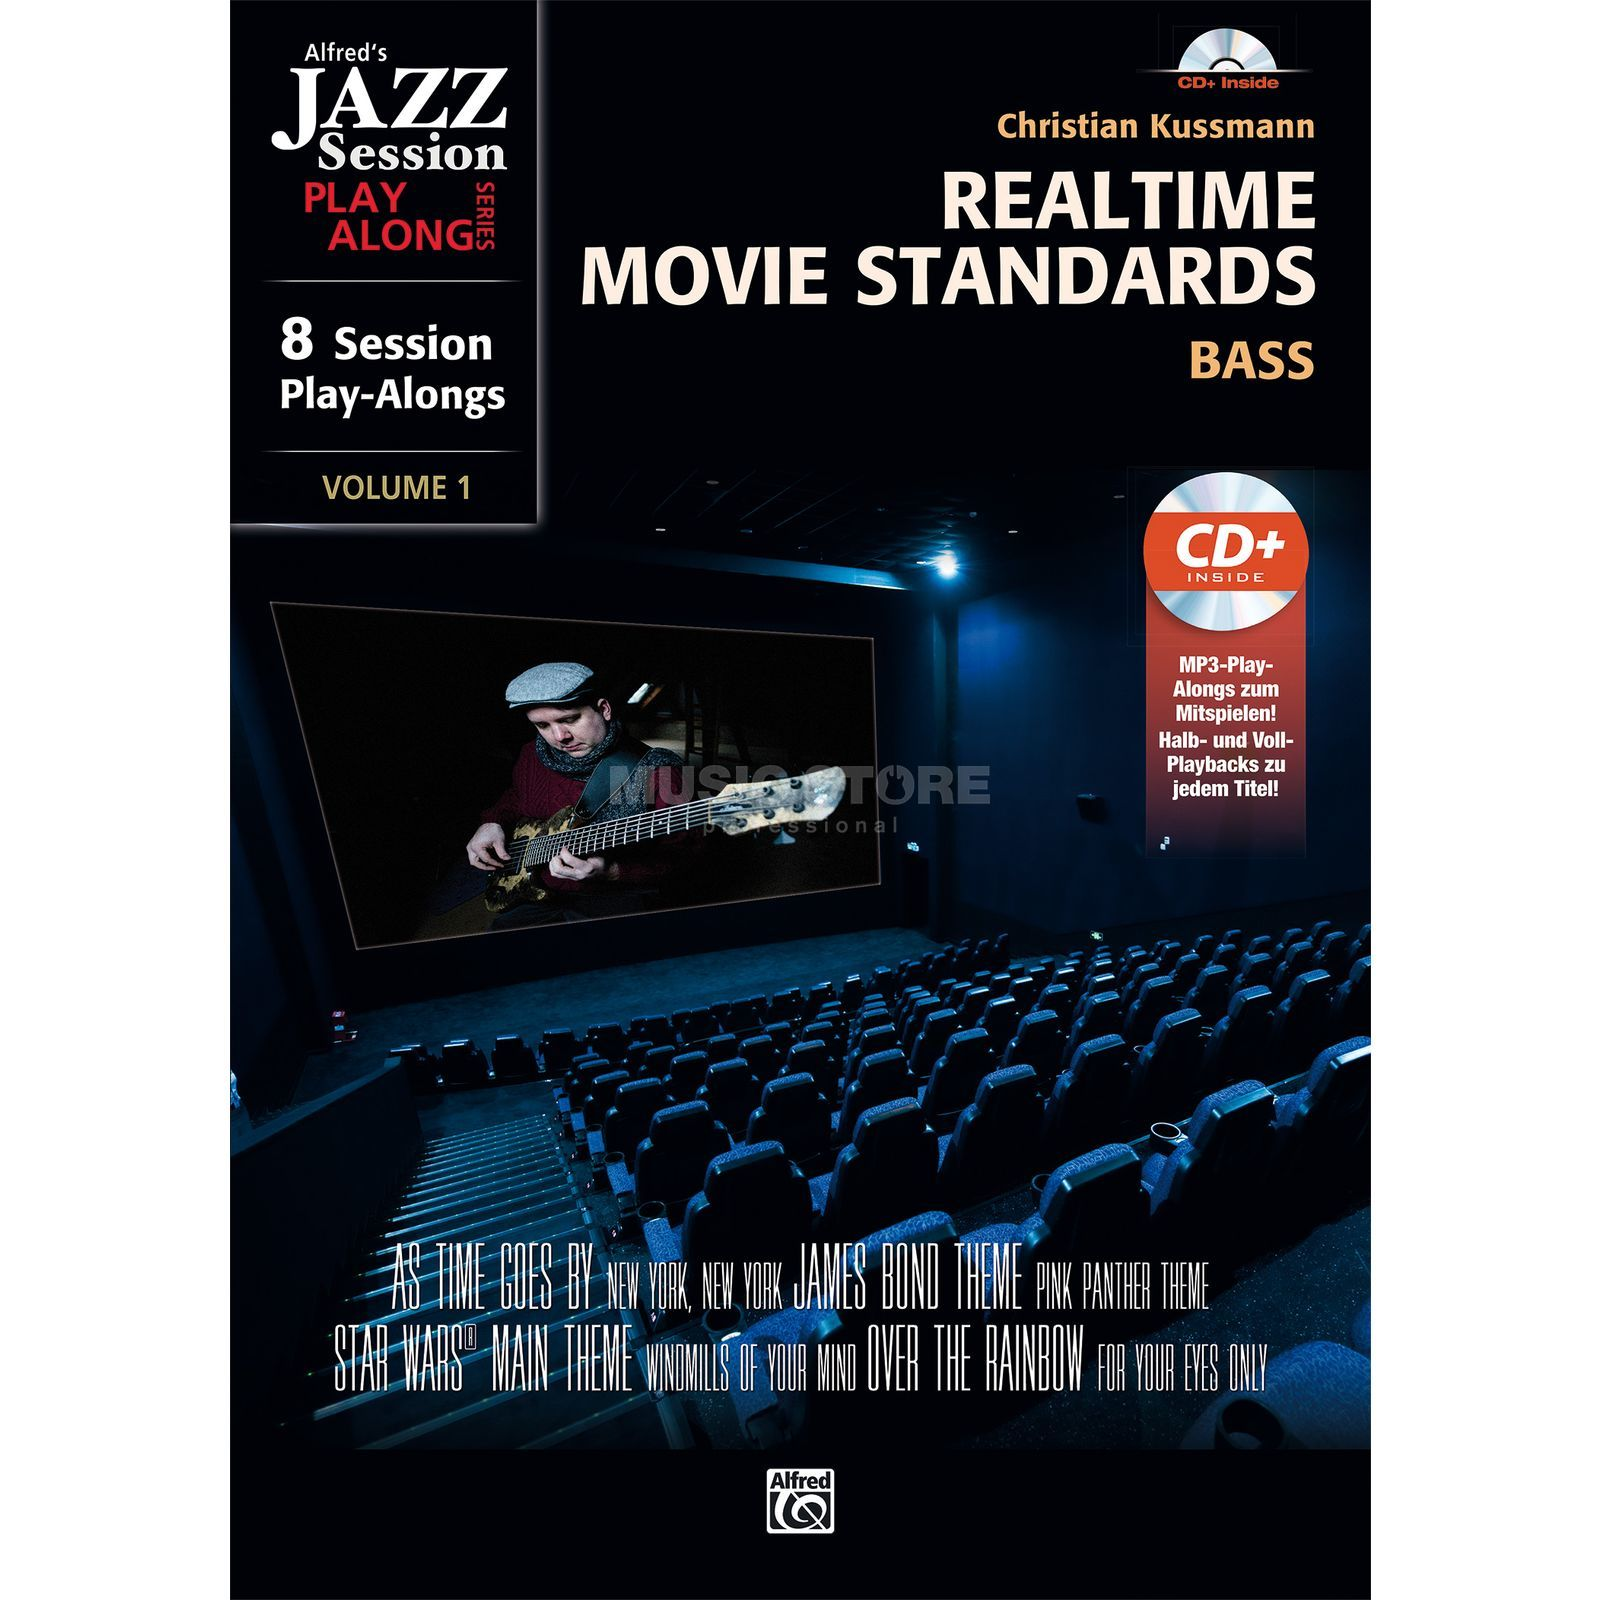 Alfred Music Realtime Movie Standards für Bass Produktbild